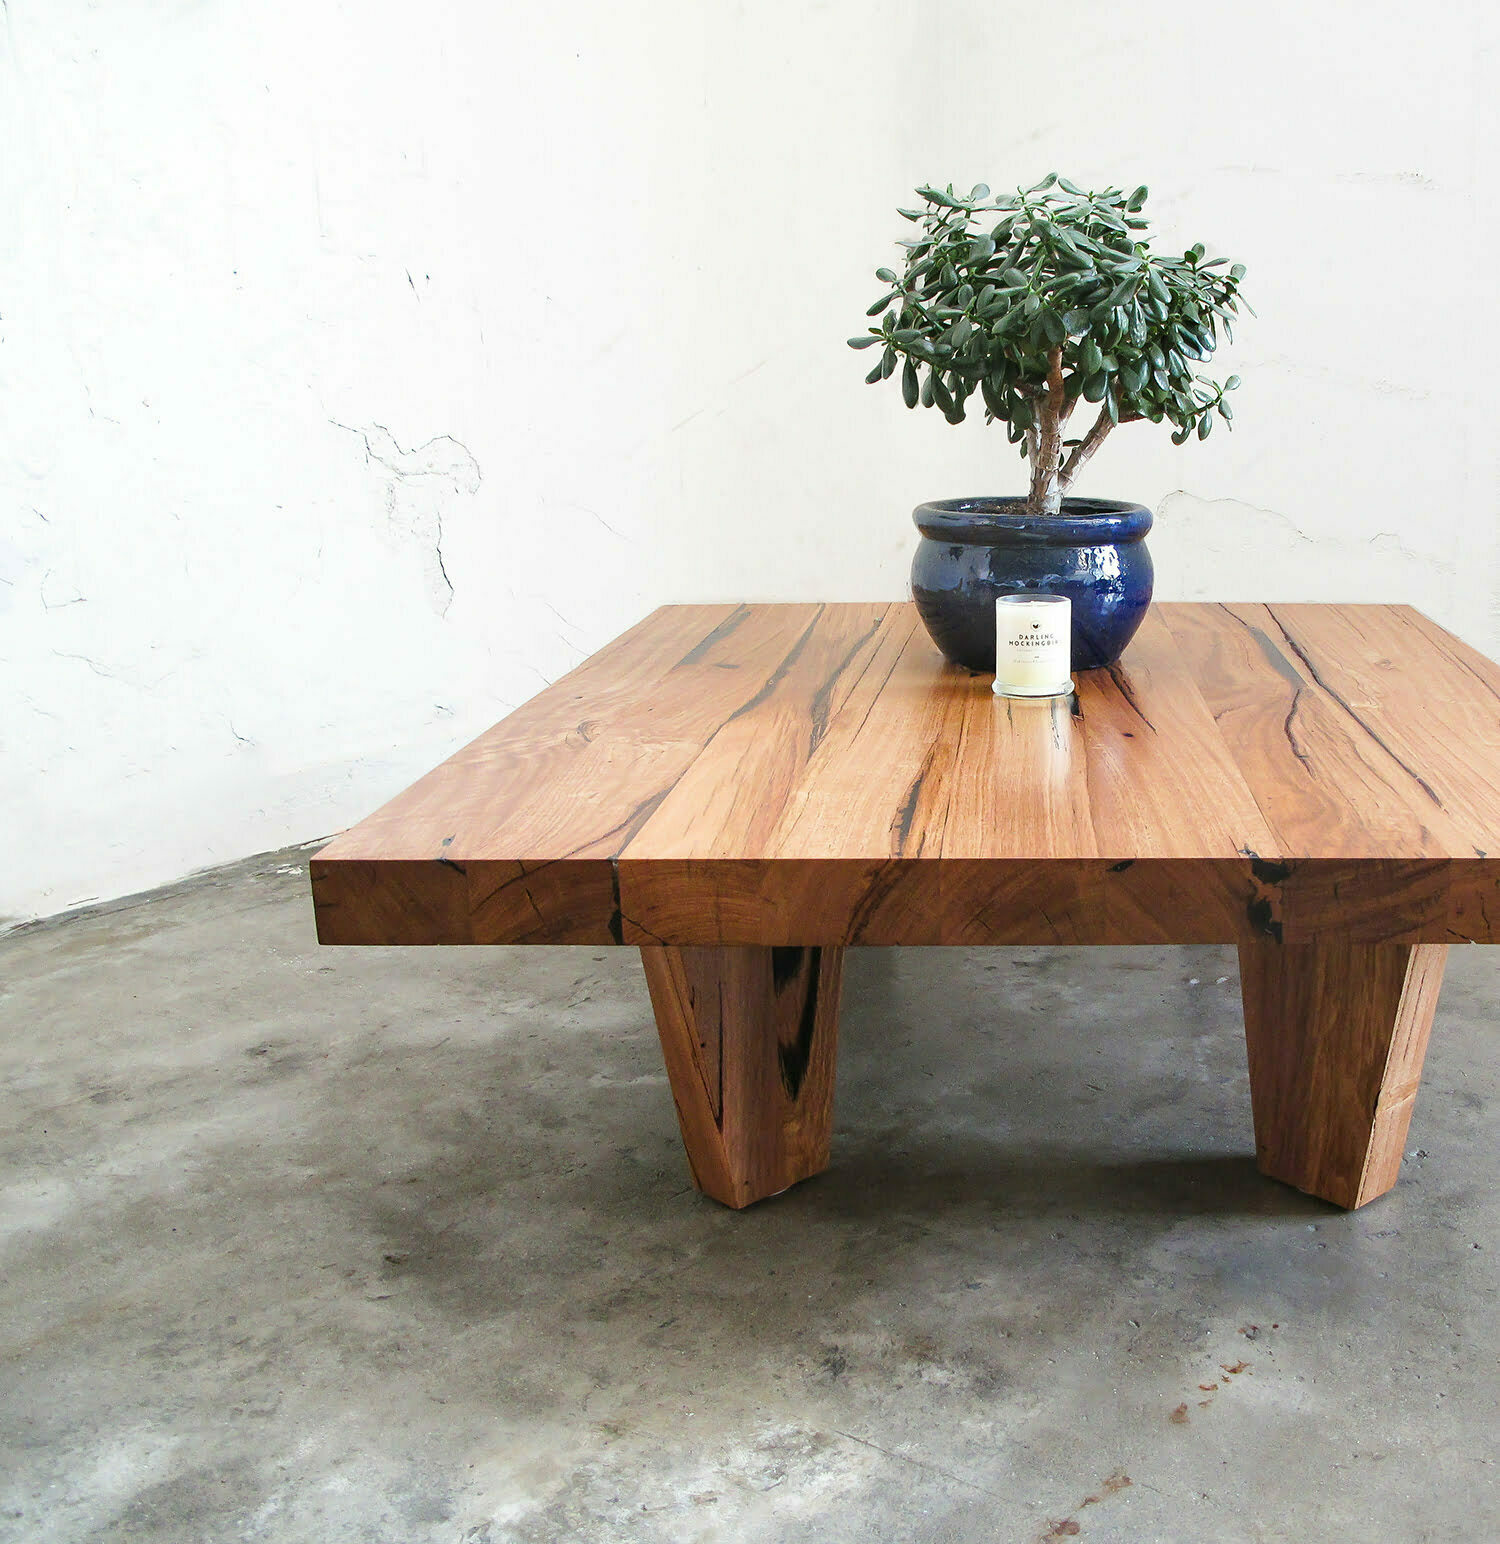 Solid Timber Coffee Table Low Rider Coffee Table Recycled Timber Furniture Melbourne Yard